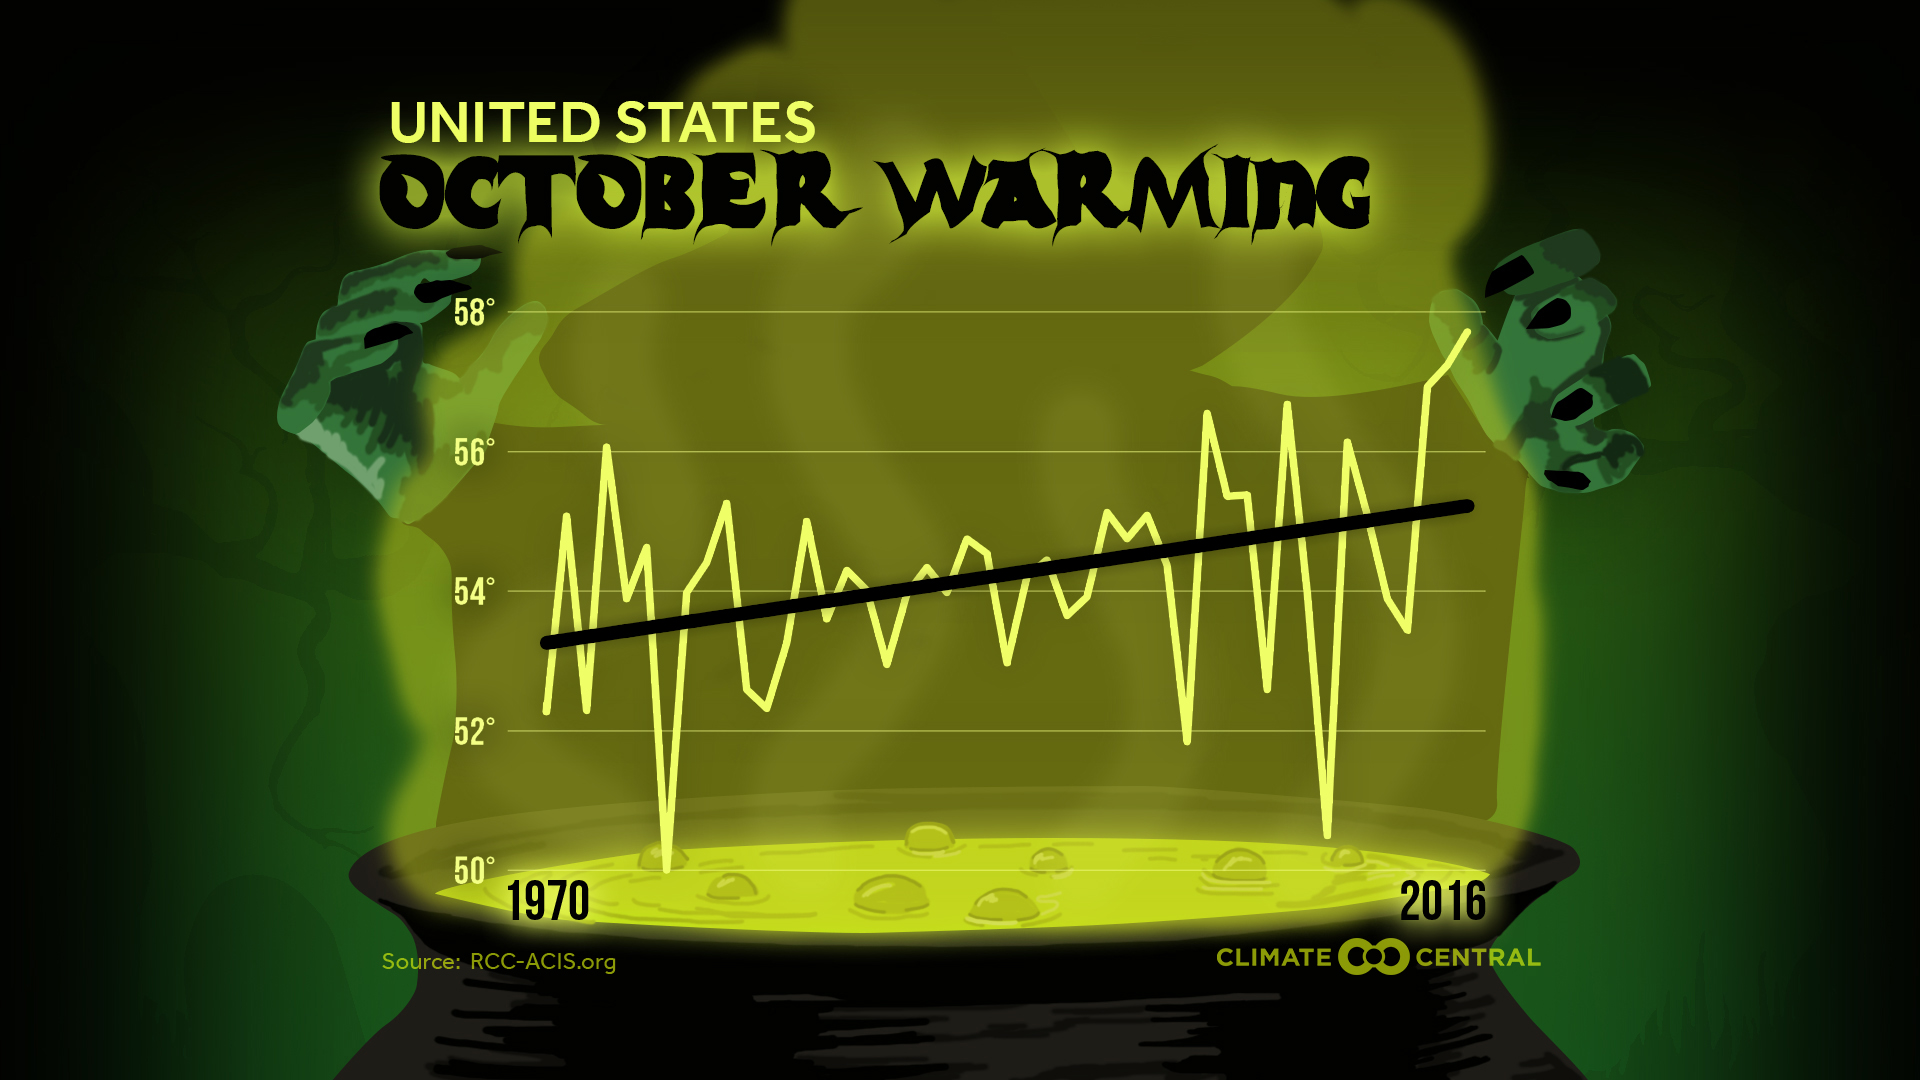 Octobers are warming across the U.S. with the increasing accumulation of greenhouse gases in the atmosphere. Since 1970, October temperatures have risen about 2°F. Warming throughout the fall is even stronger in some parts of the country, with the Northeast and the West warming the most. This warming can delay the start of some of the traditional cold season activities in cooler and mountainous climates, such as skiing. The warming trend also means first freezes occur later in the year, which can allow more insects to survive later into the year and make for a longer fall allergy season.